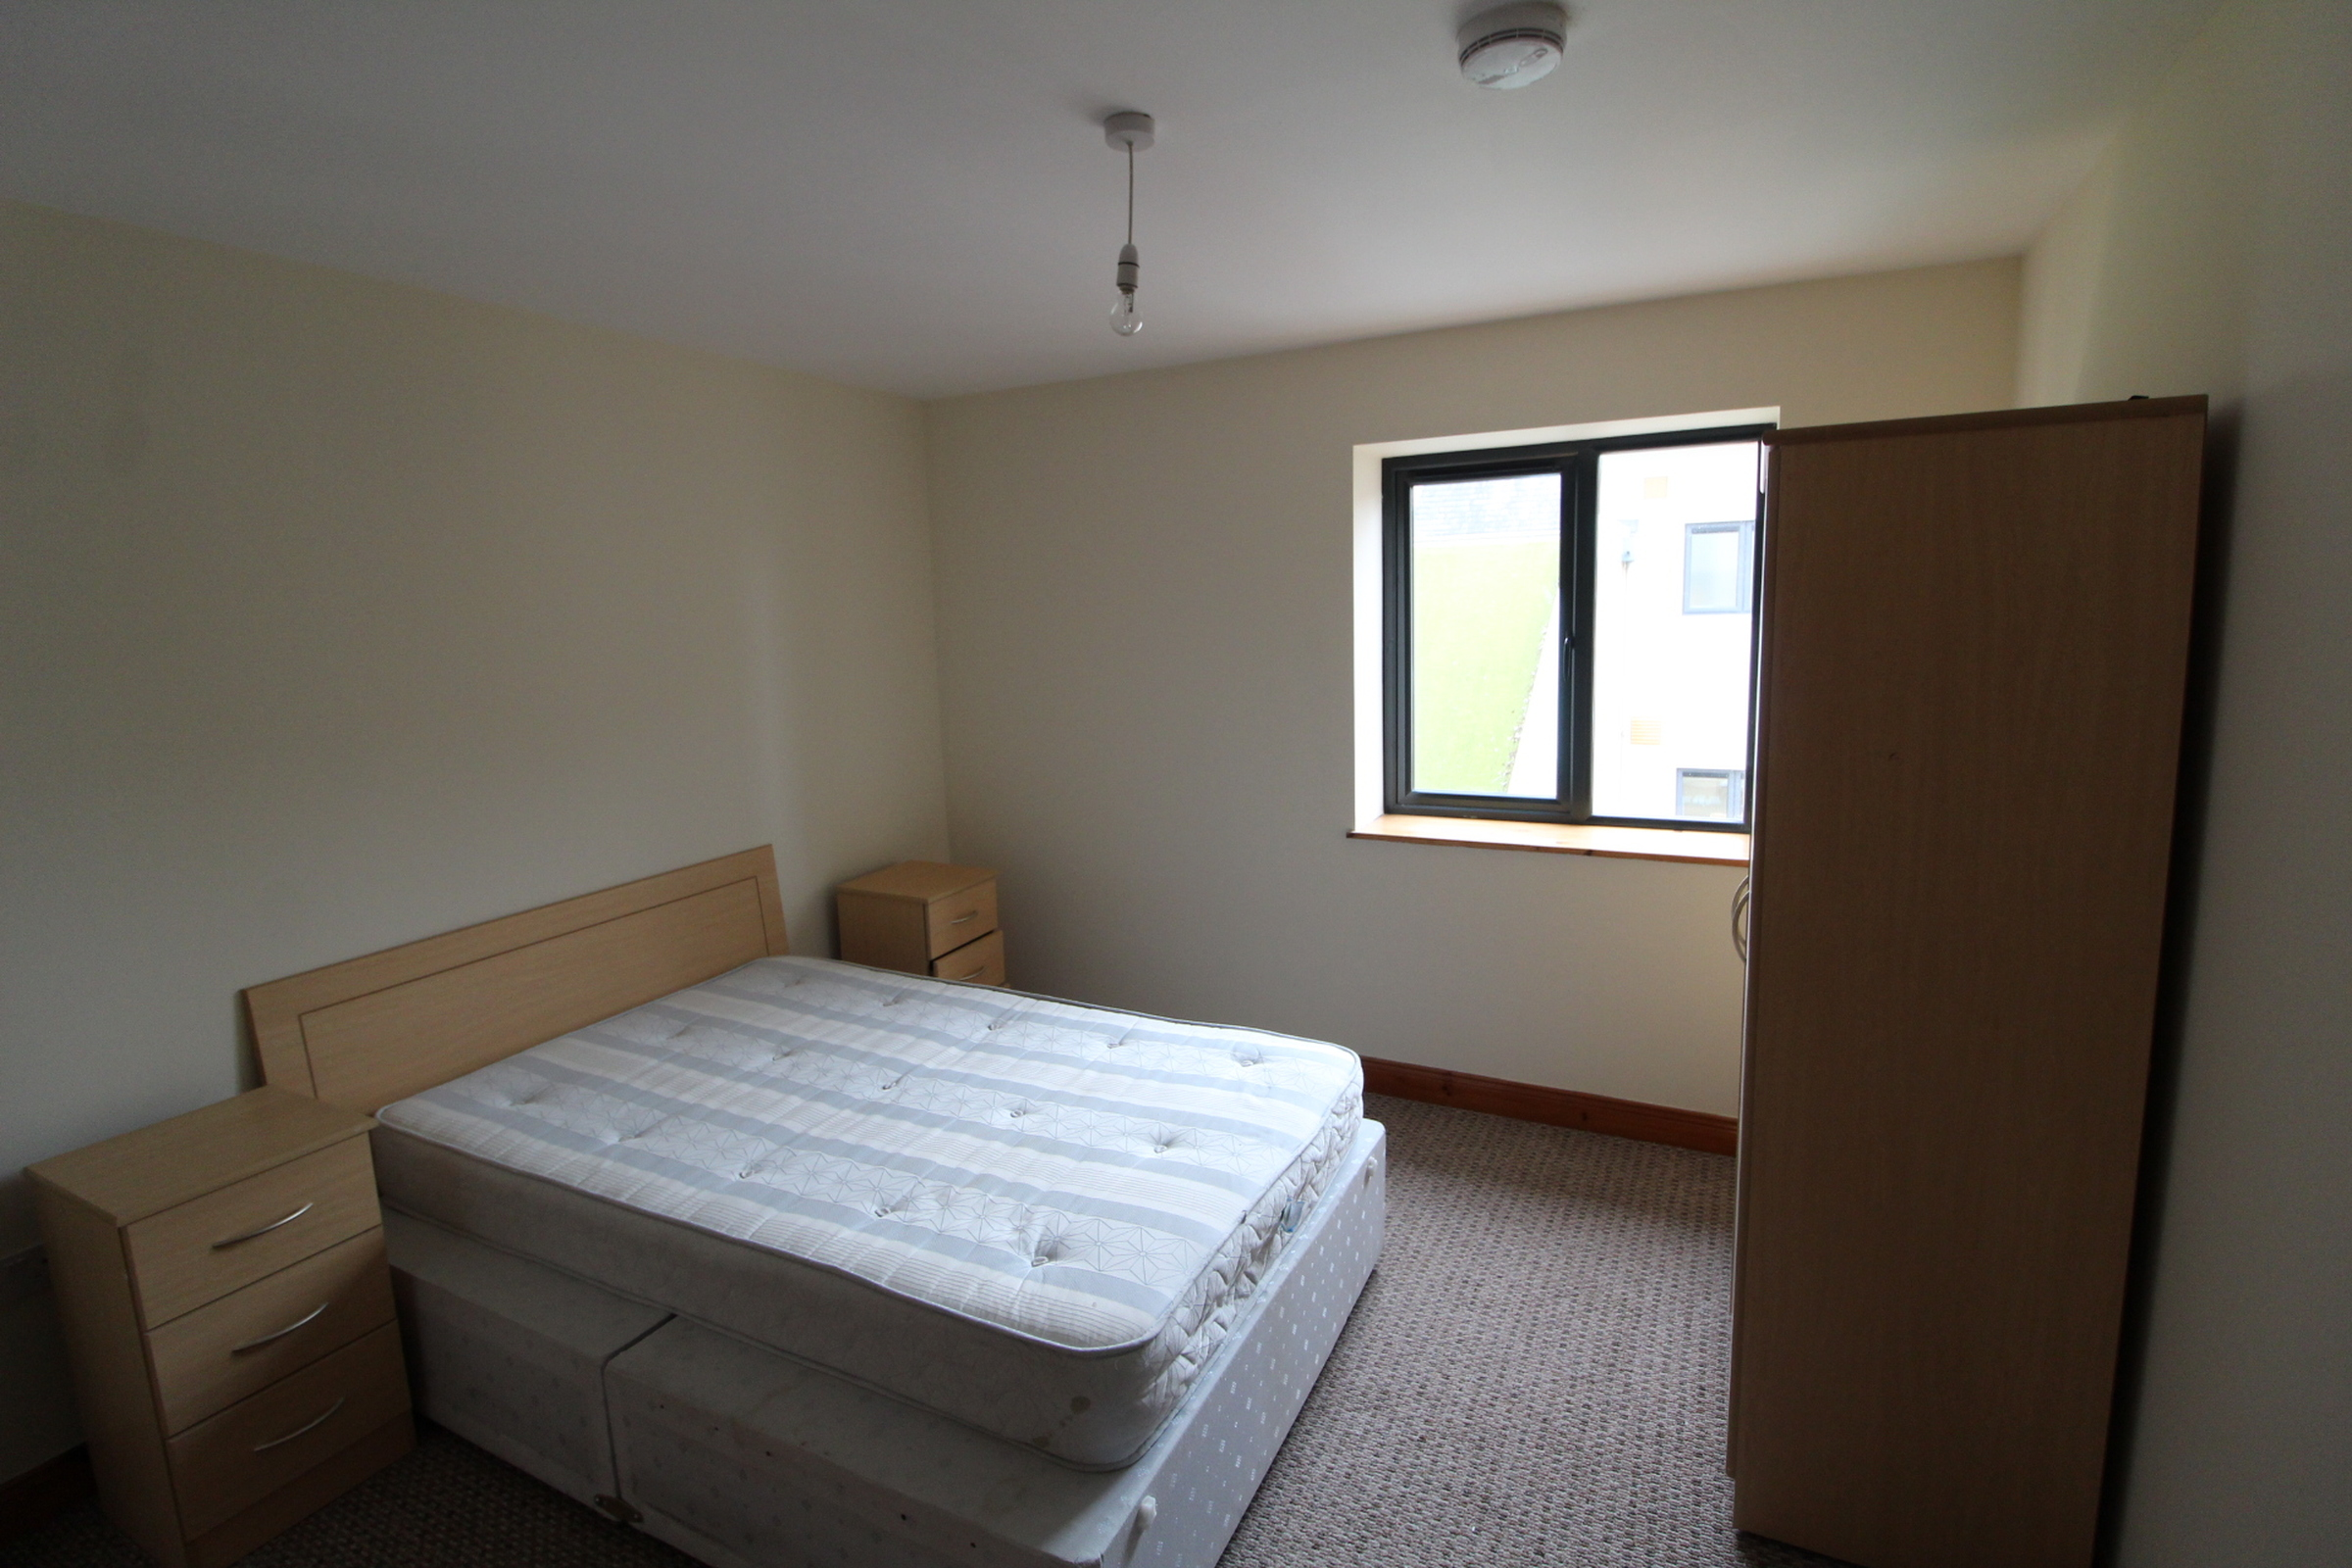 Apartment 26, The Towers, Fairgreen, Mallow, Co. Cork